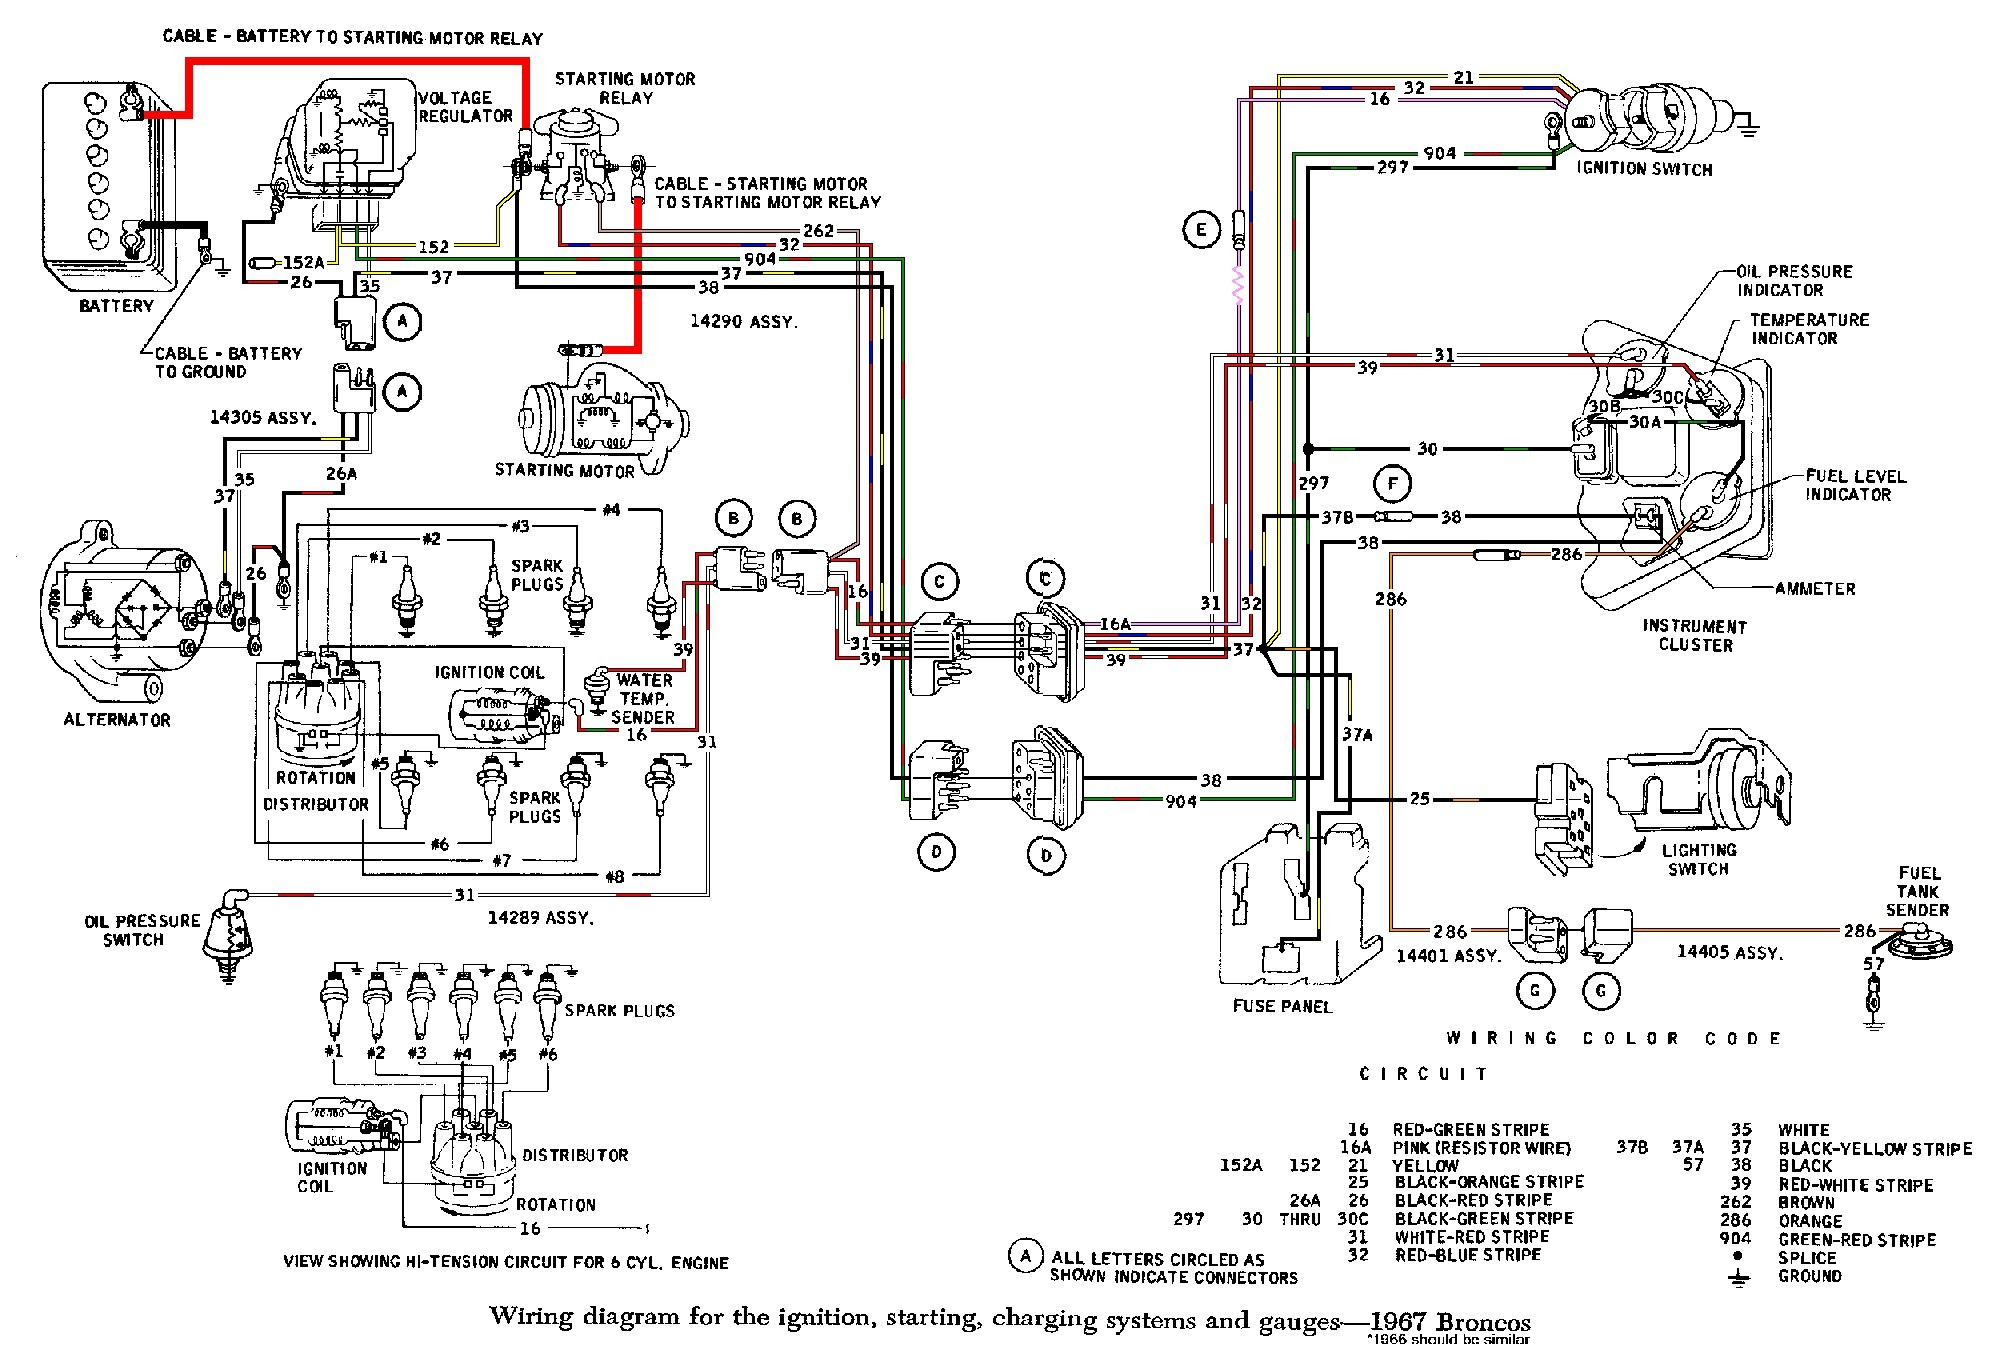 Car Radio Circuit Diagram Fresh Jvc Kd Sr72 Wiring Diagram Diagram Of Car Radio Circuit Diagram